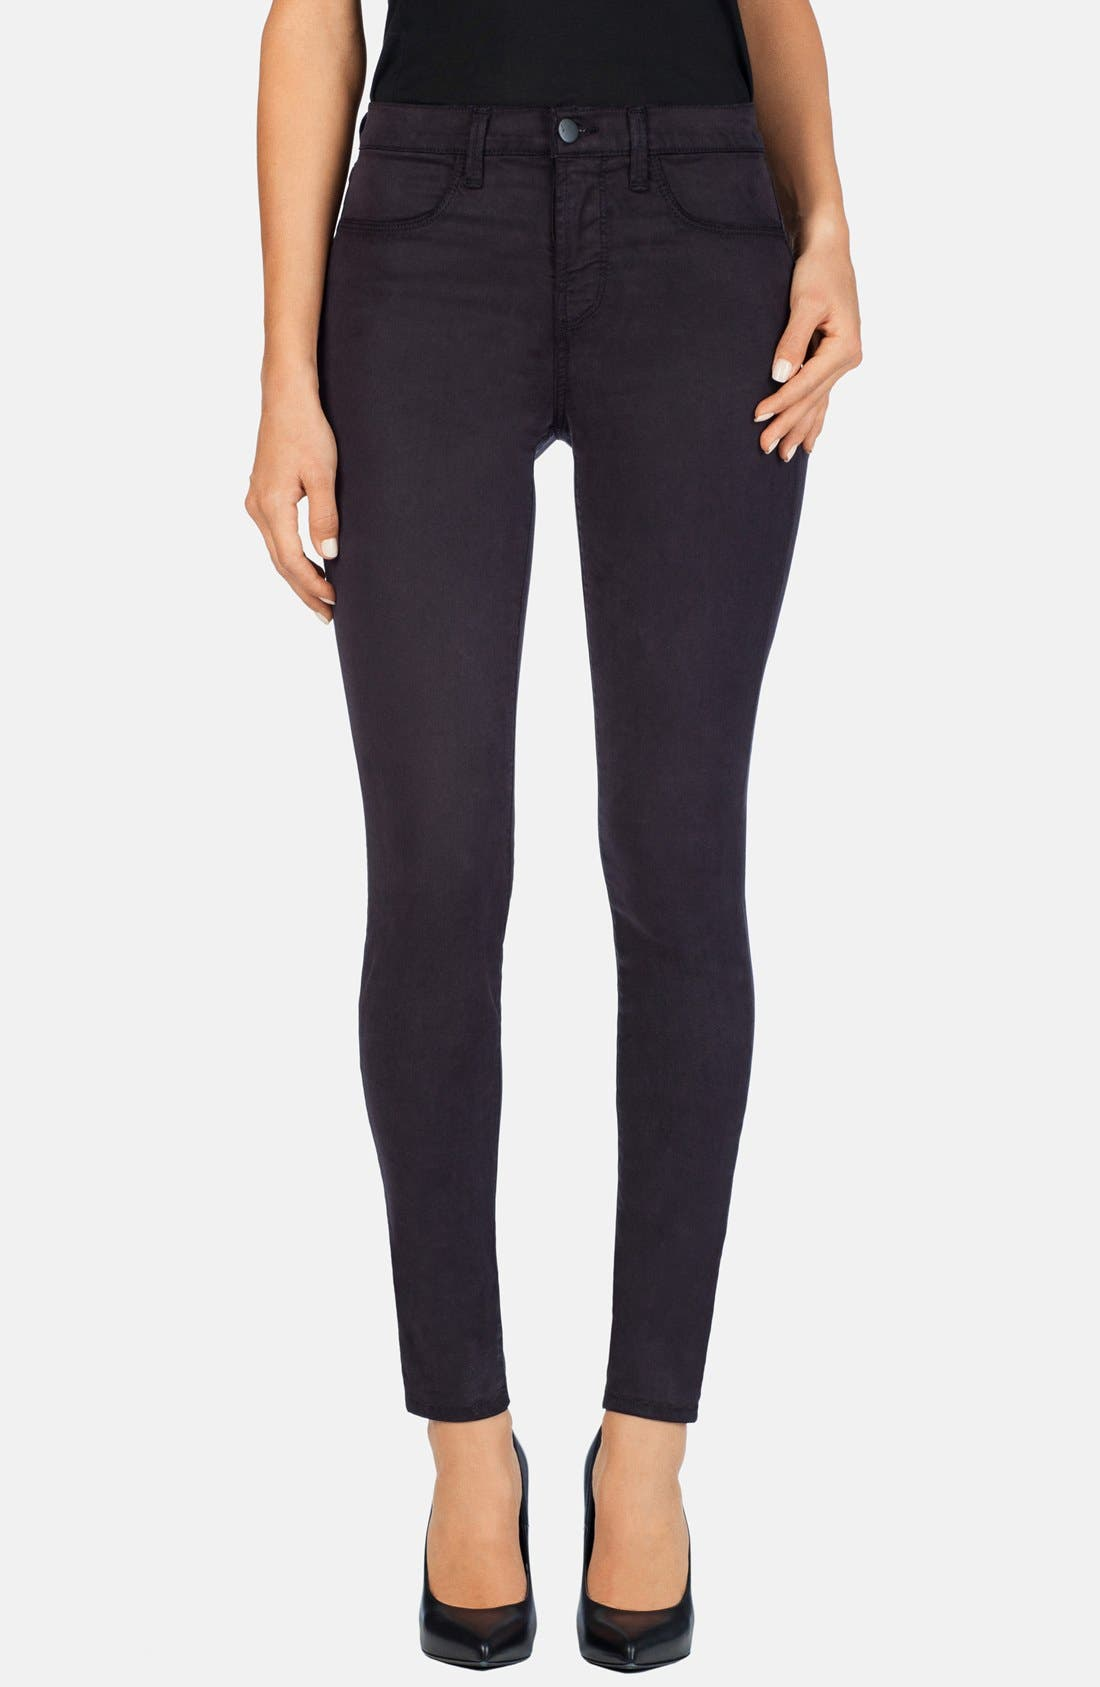 Alternate Image 1 Selected - J Brand '485' Mid Rise Super Skinny Jeans